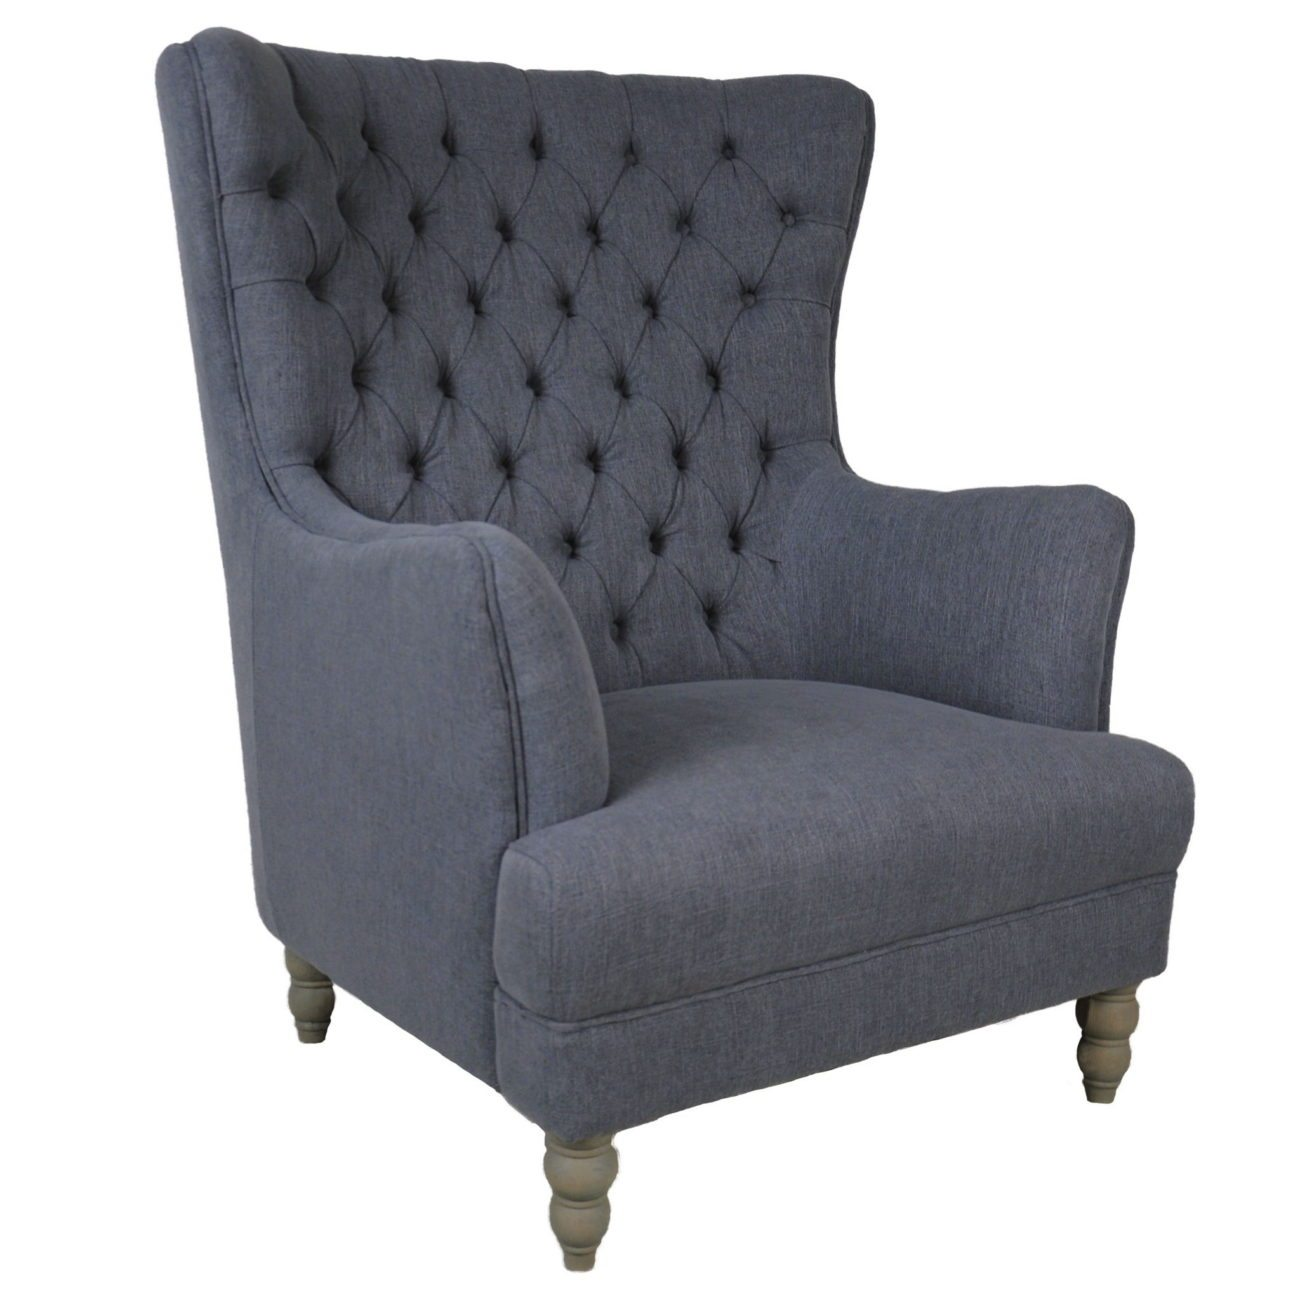 Oversized Wingback Chair Stockwell Wingback Chair